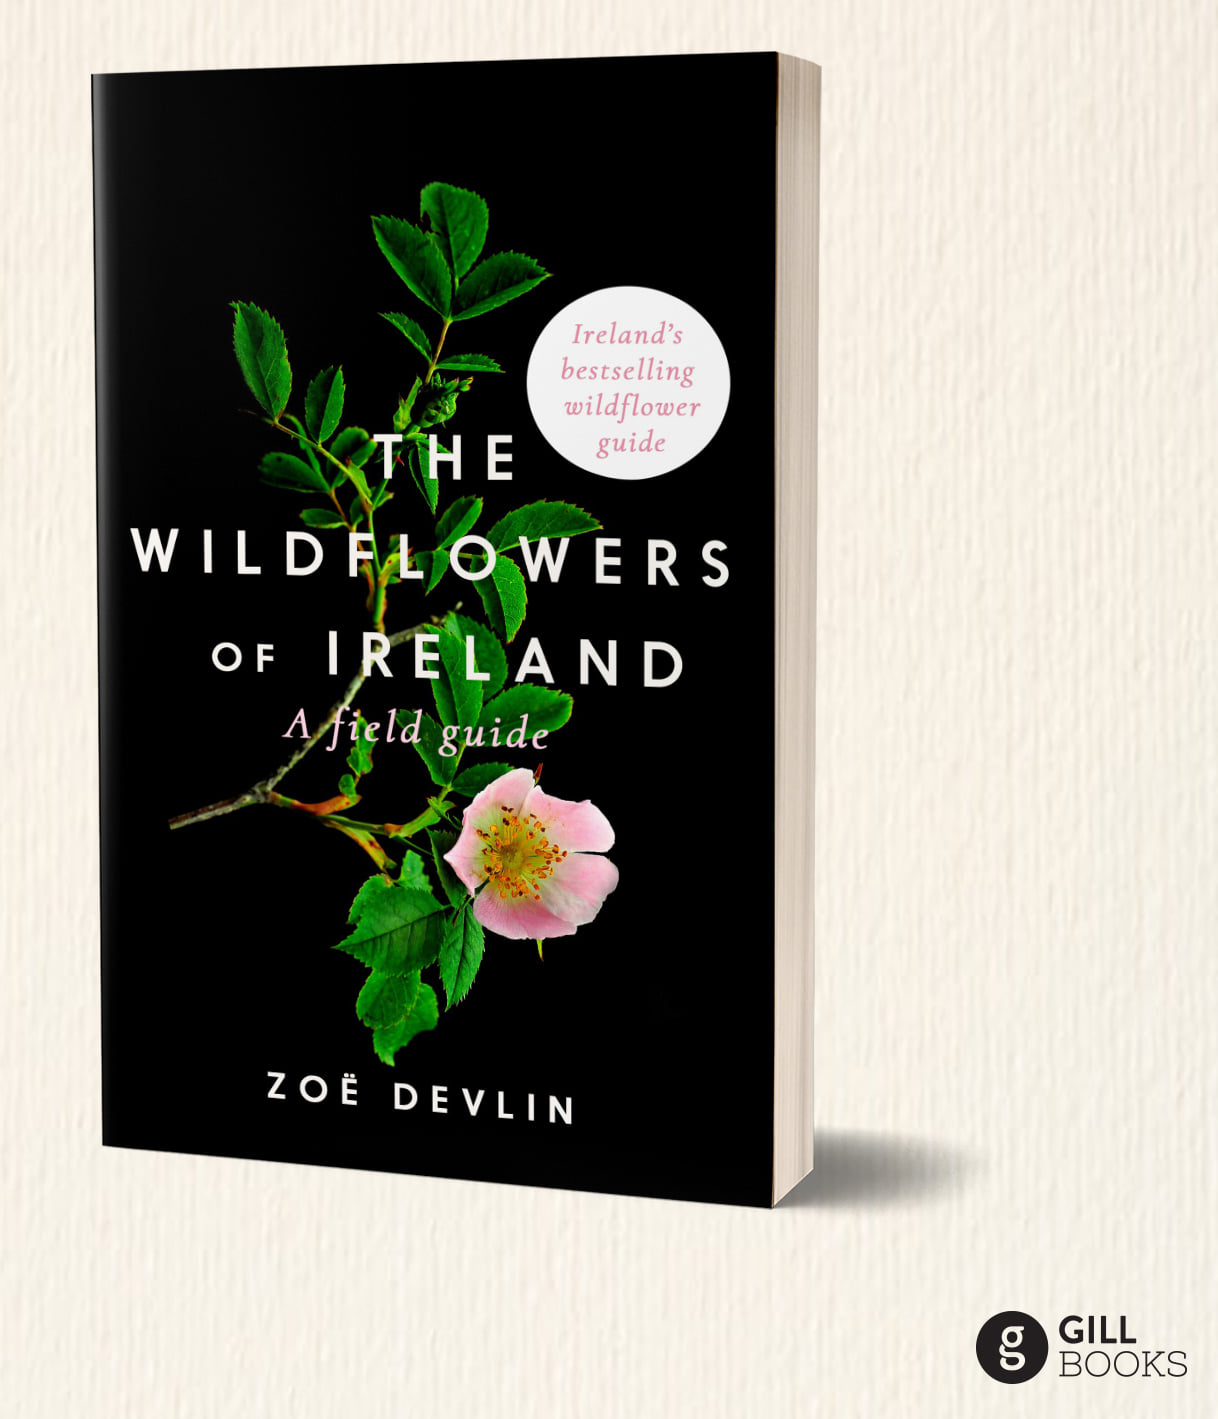 Wildflowers of Ireland book cover